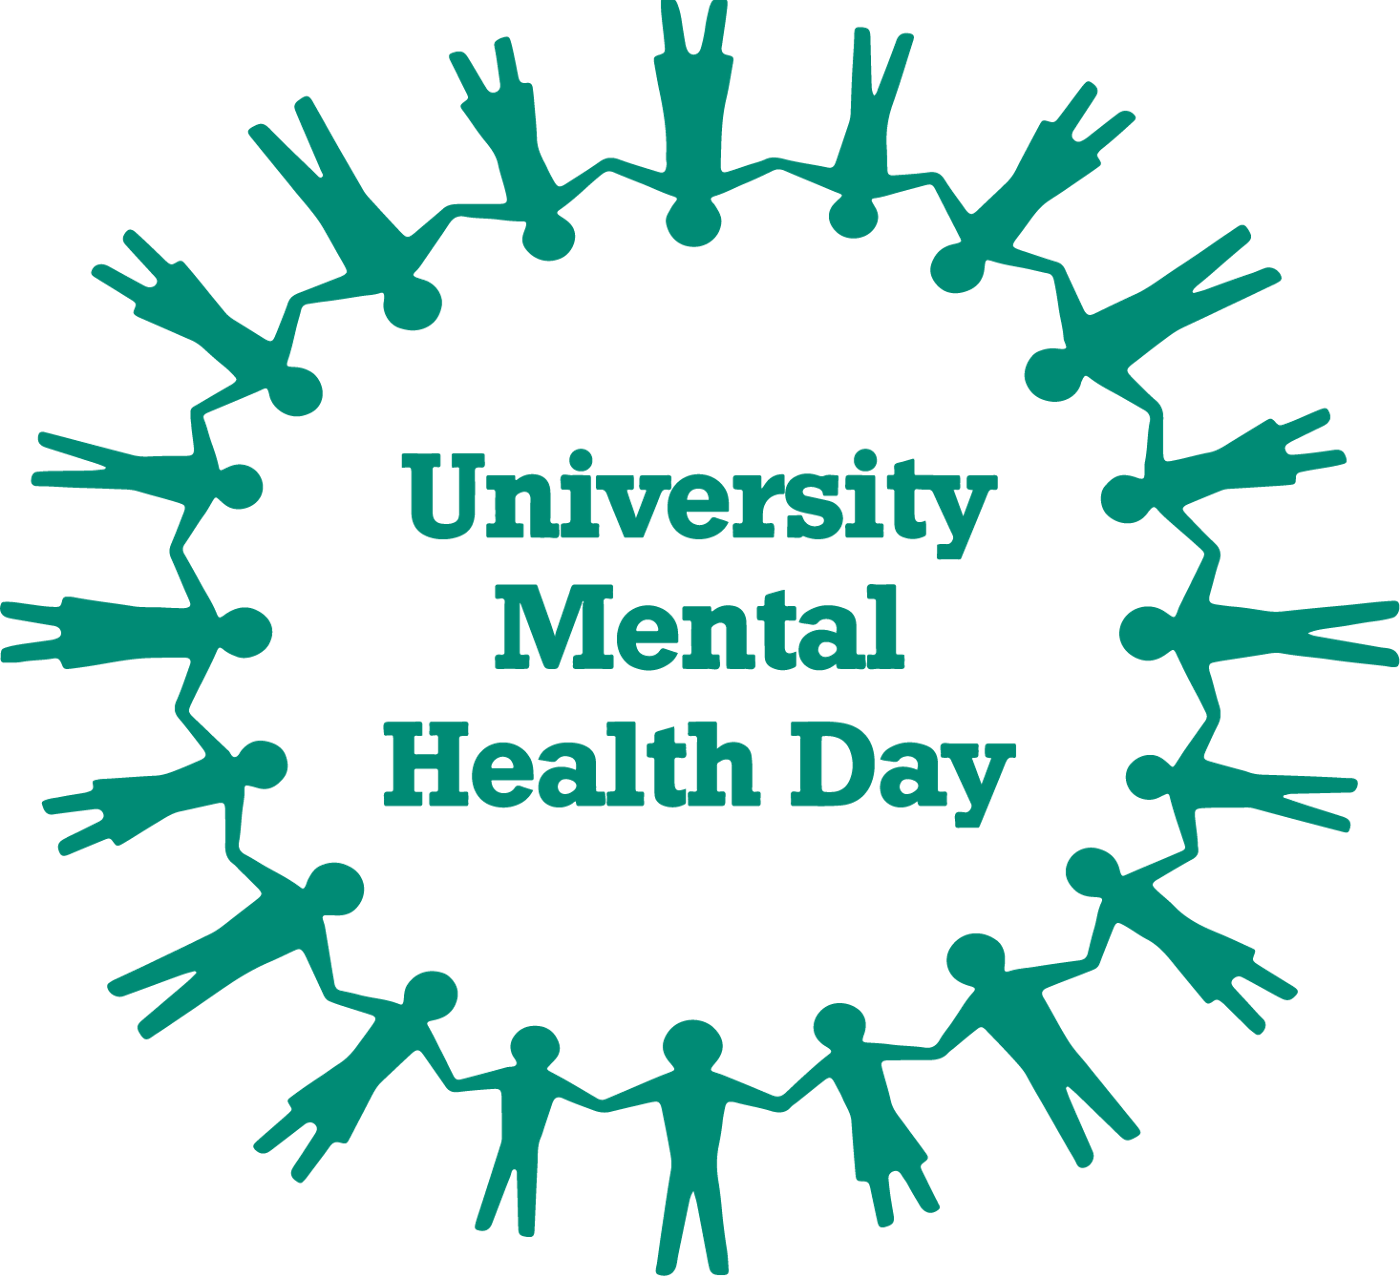 """The words """"University Mental Health Day"""" surrounded by a circle of stick figures with joined hands."""